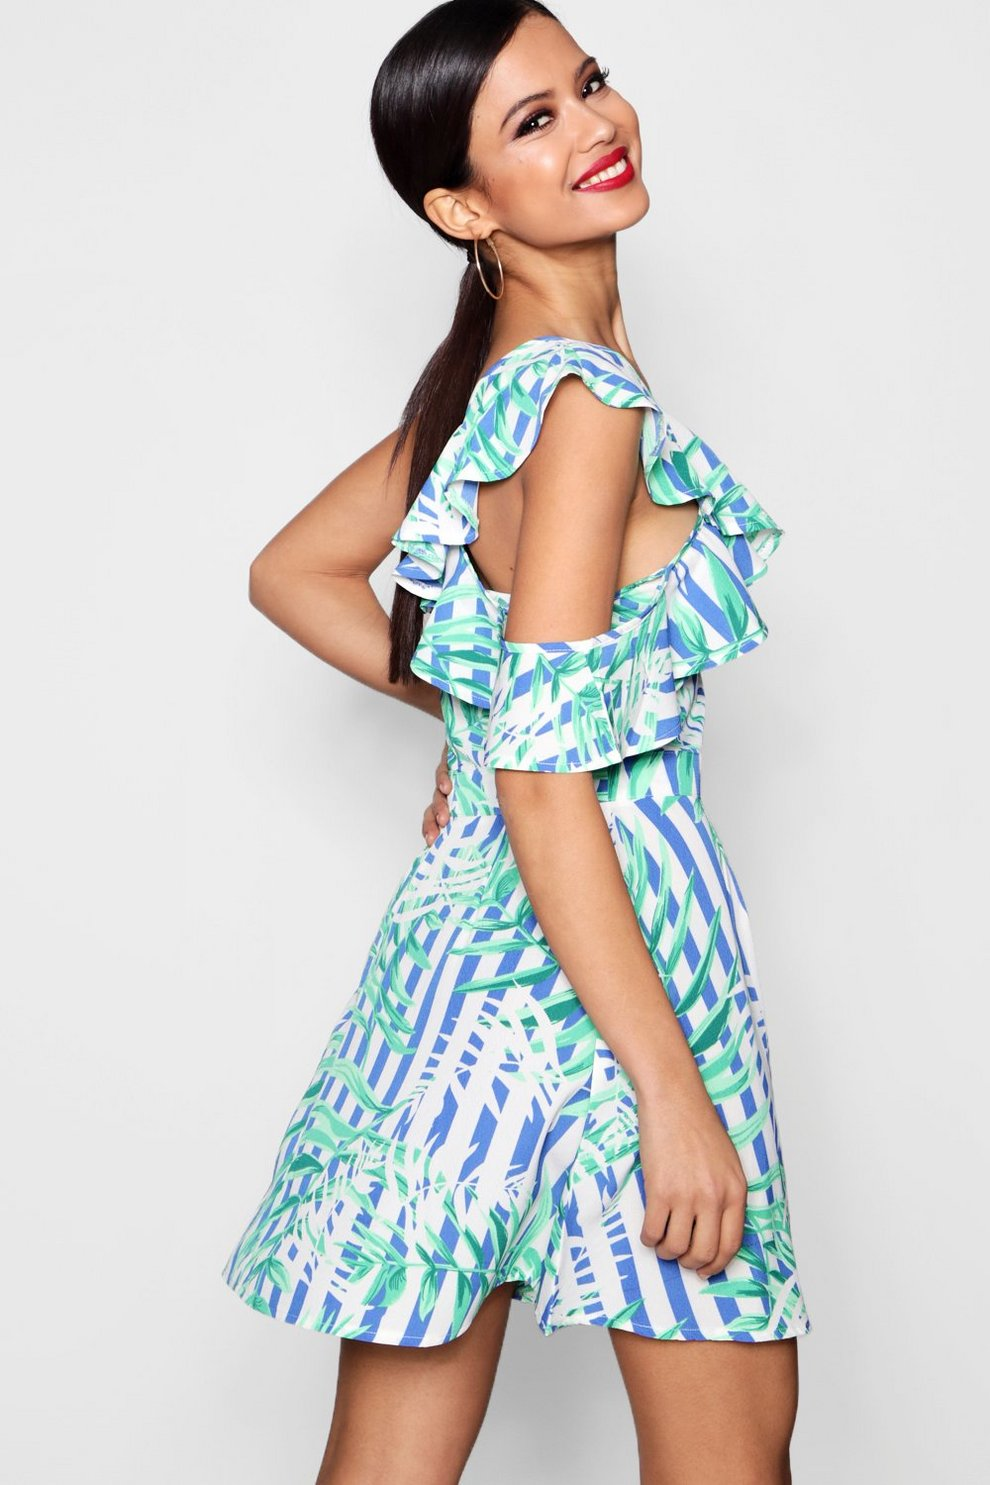 Cheap Online Store Sale Supply Boohoo Ruffle Stripe Shoulder Skater Dress Outlet Top Quality wYtb75jx